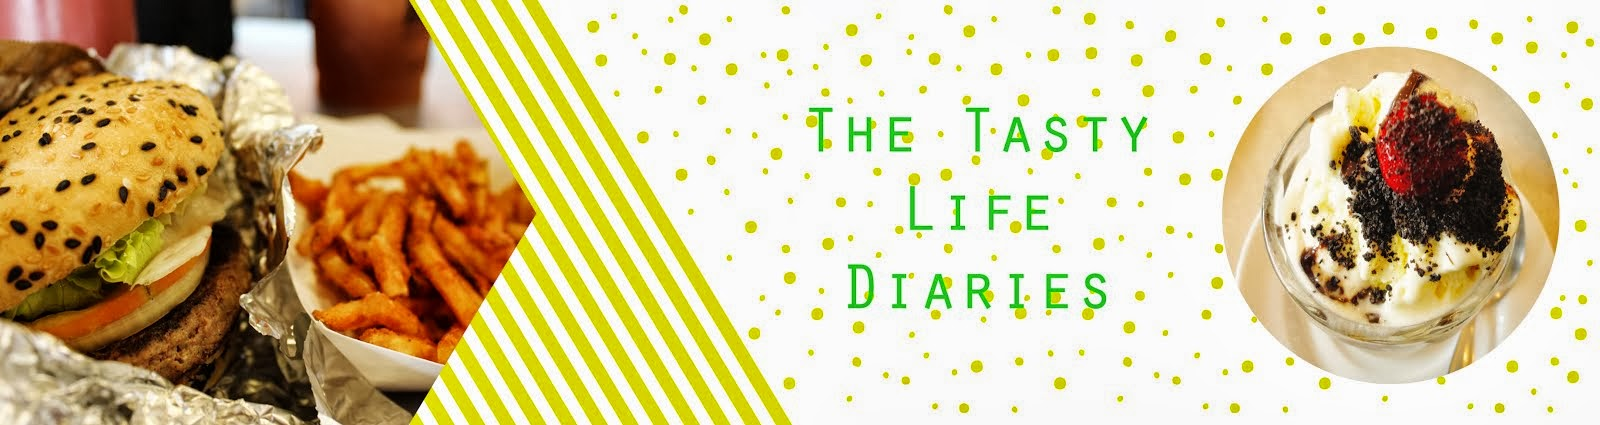 The Tasty Life Diaries